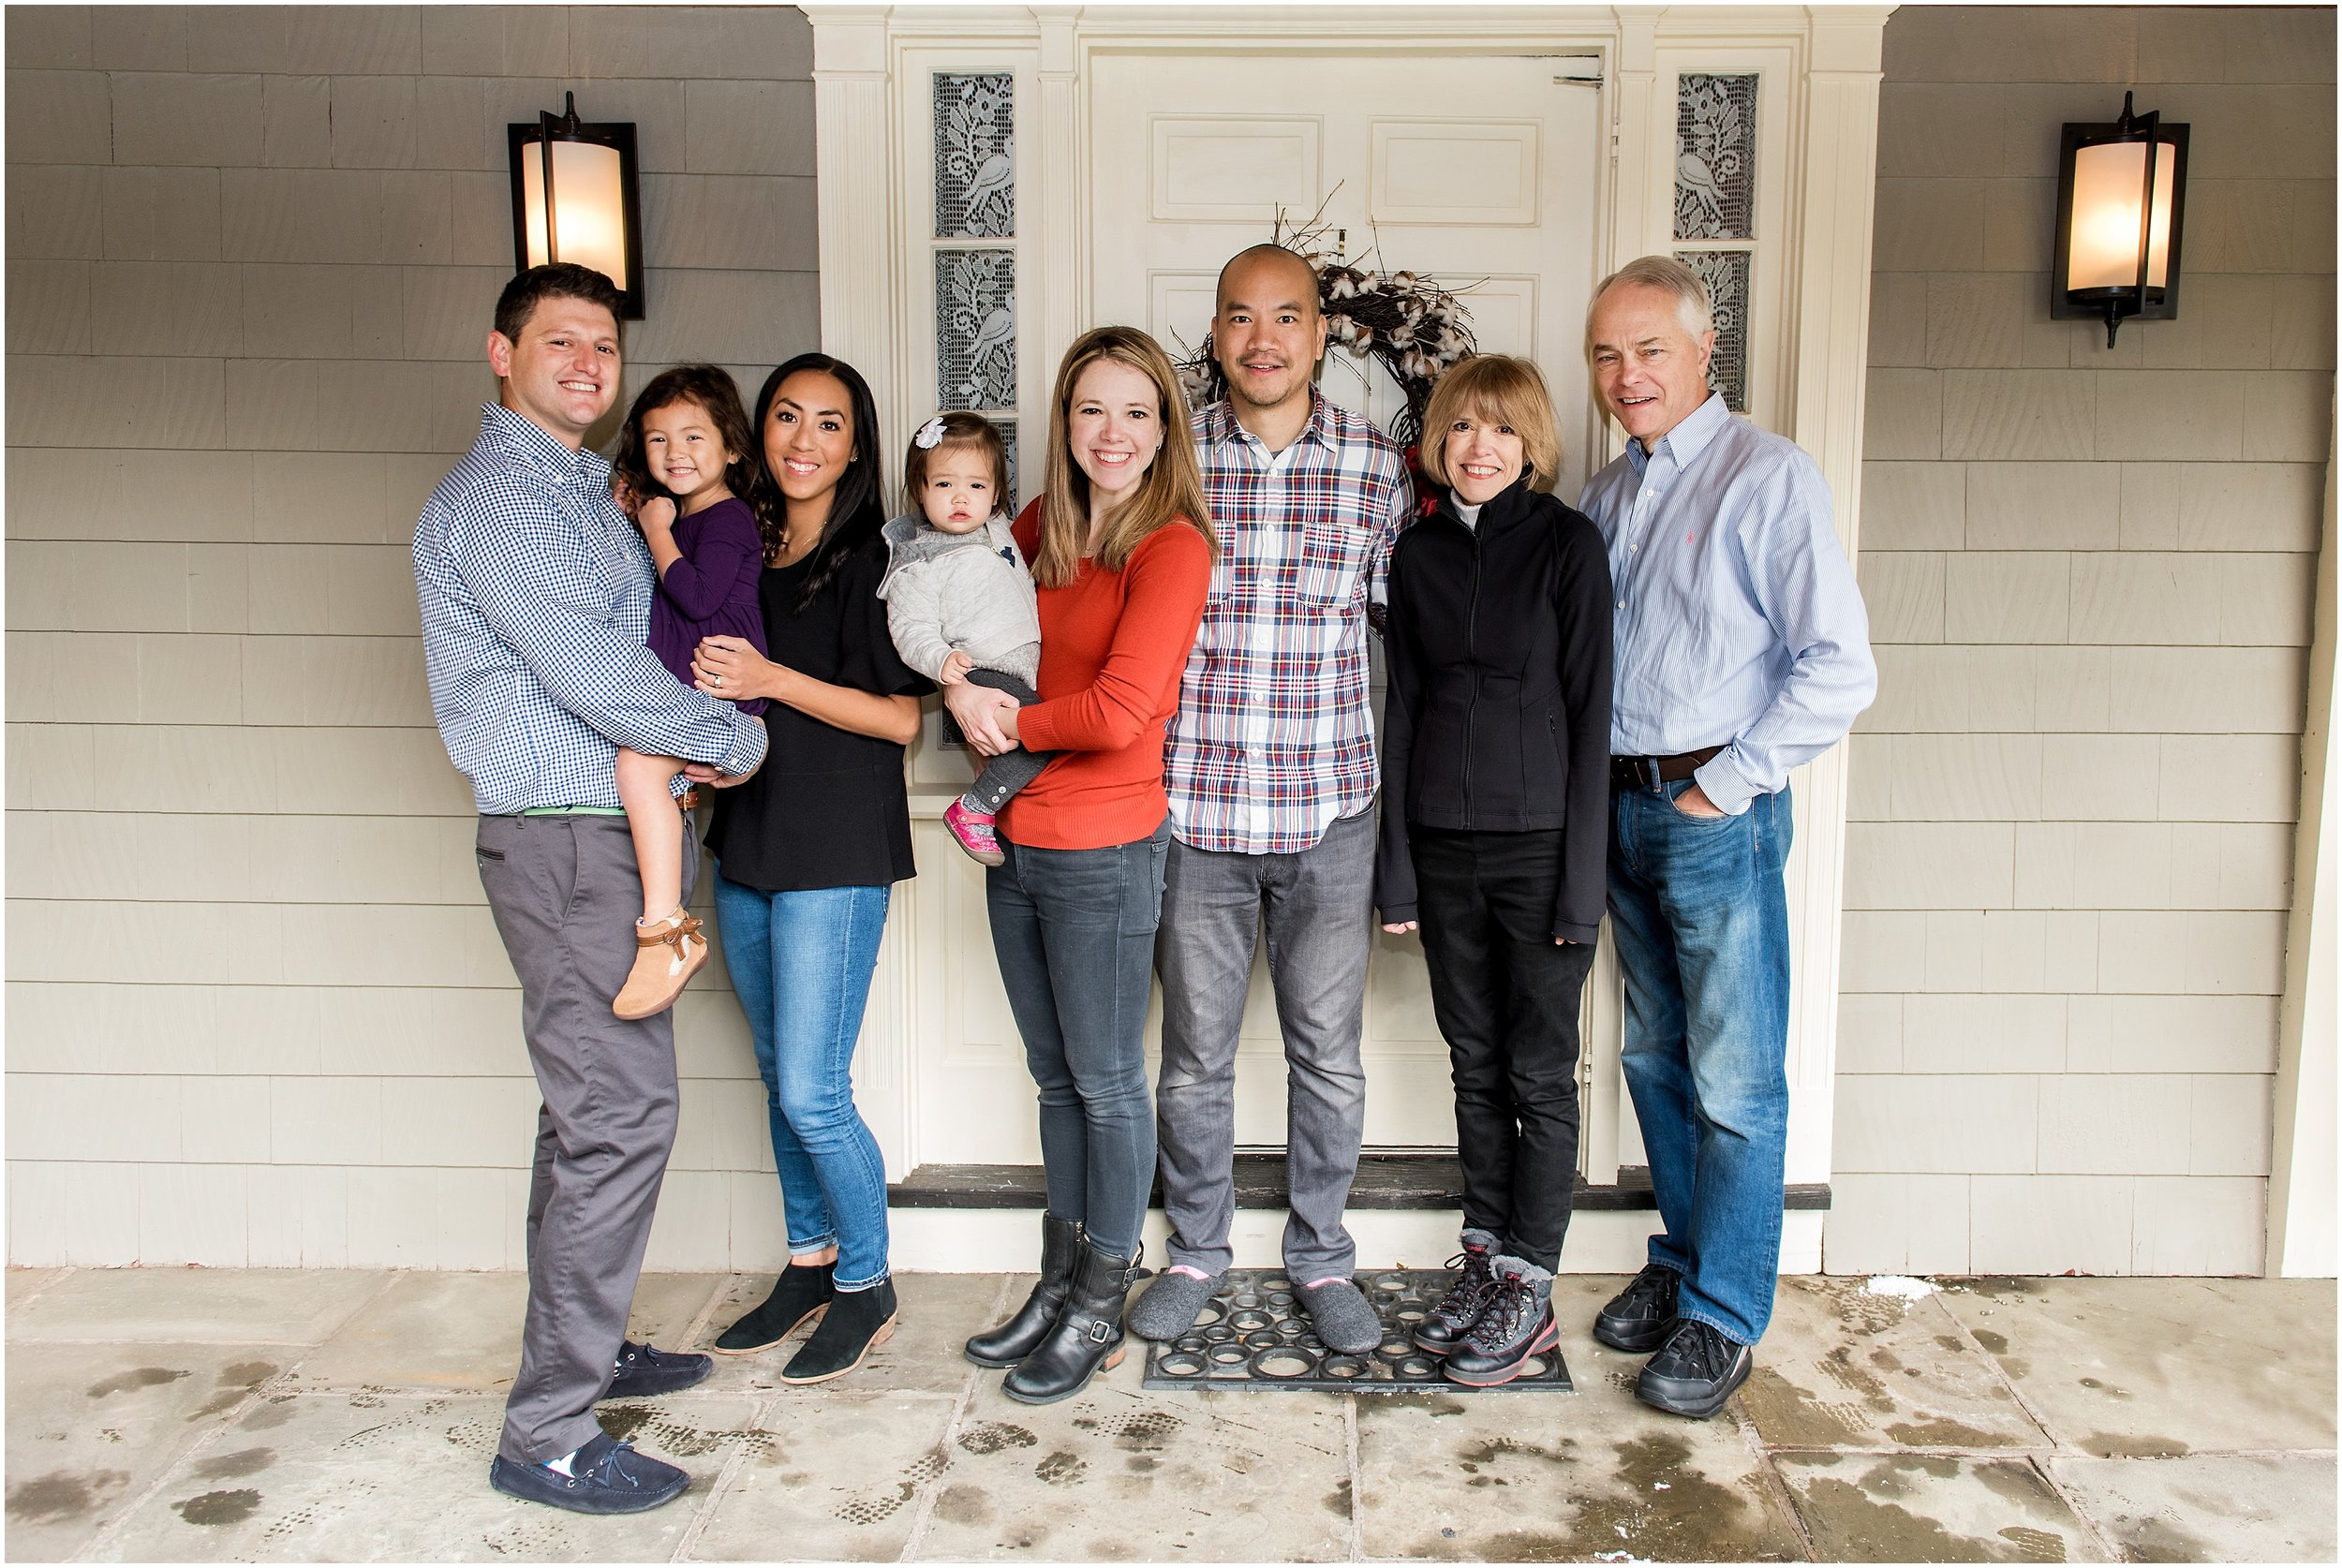 extended family photography session in new haven county, ct